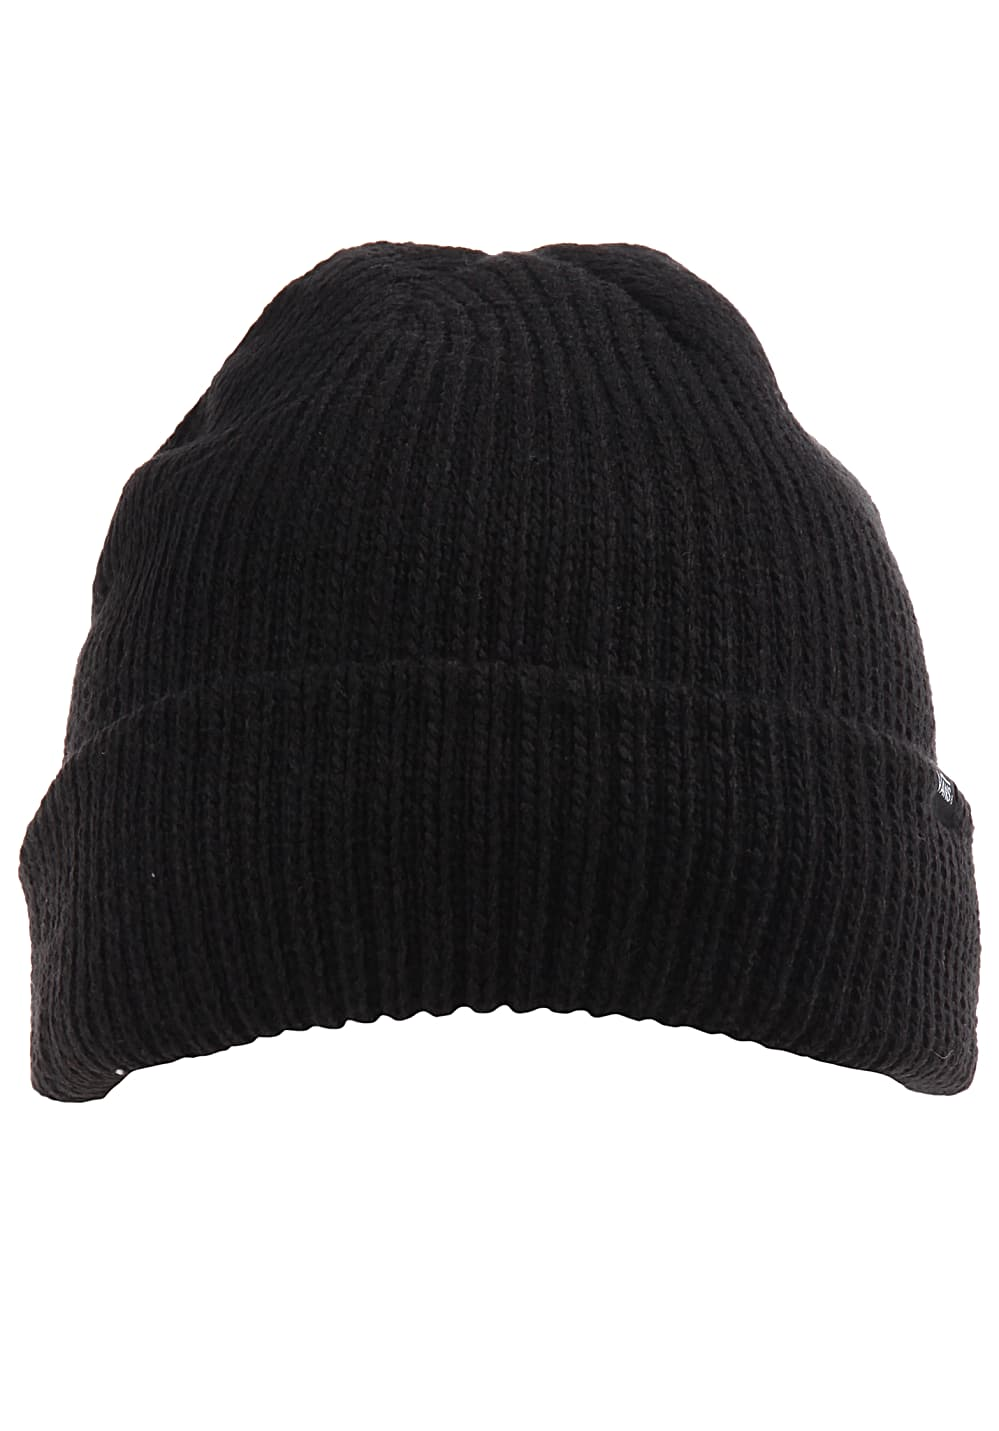 01c2a0898709d Vans Core Basics - Beanie for Men - Black - Planet Sports